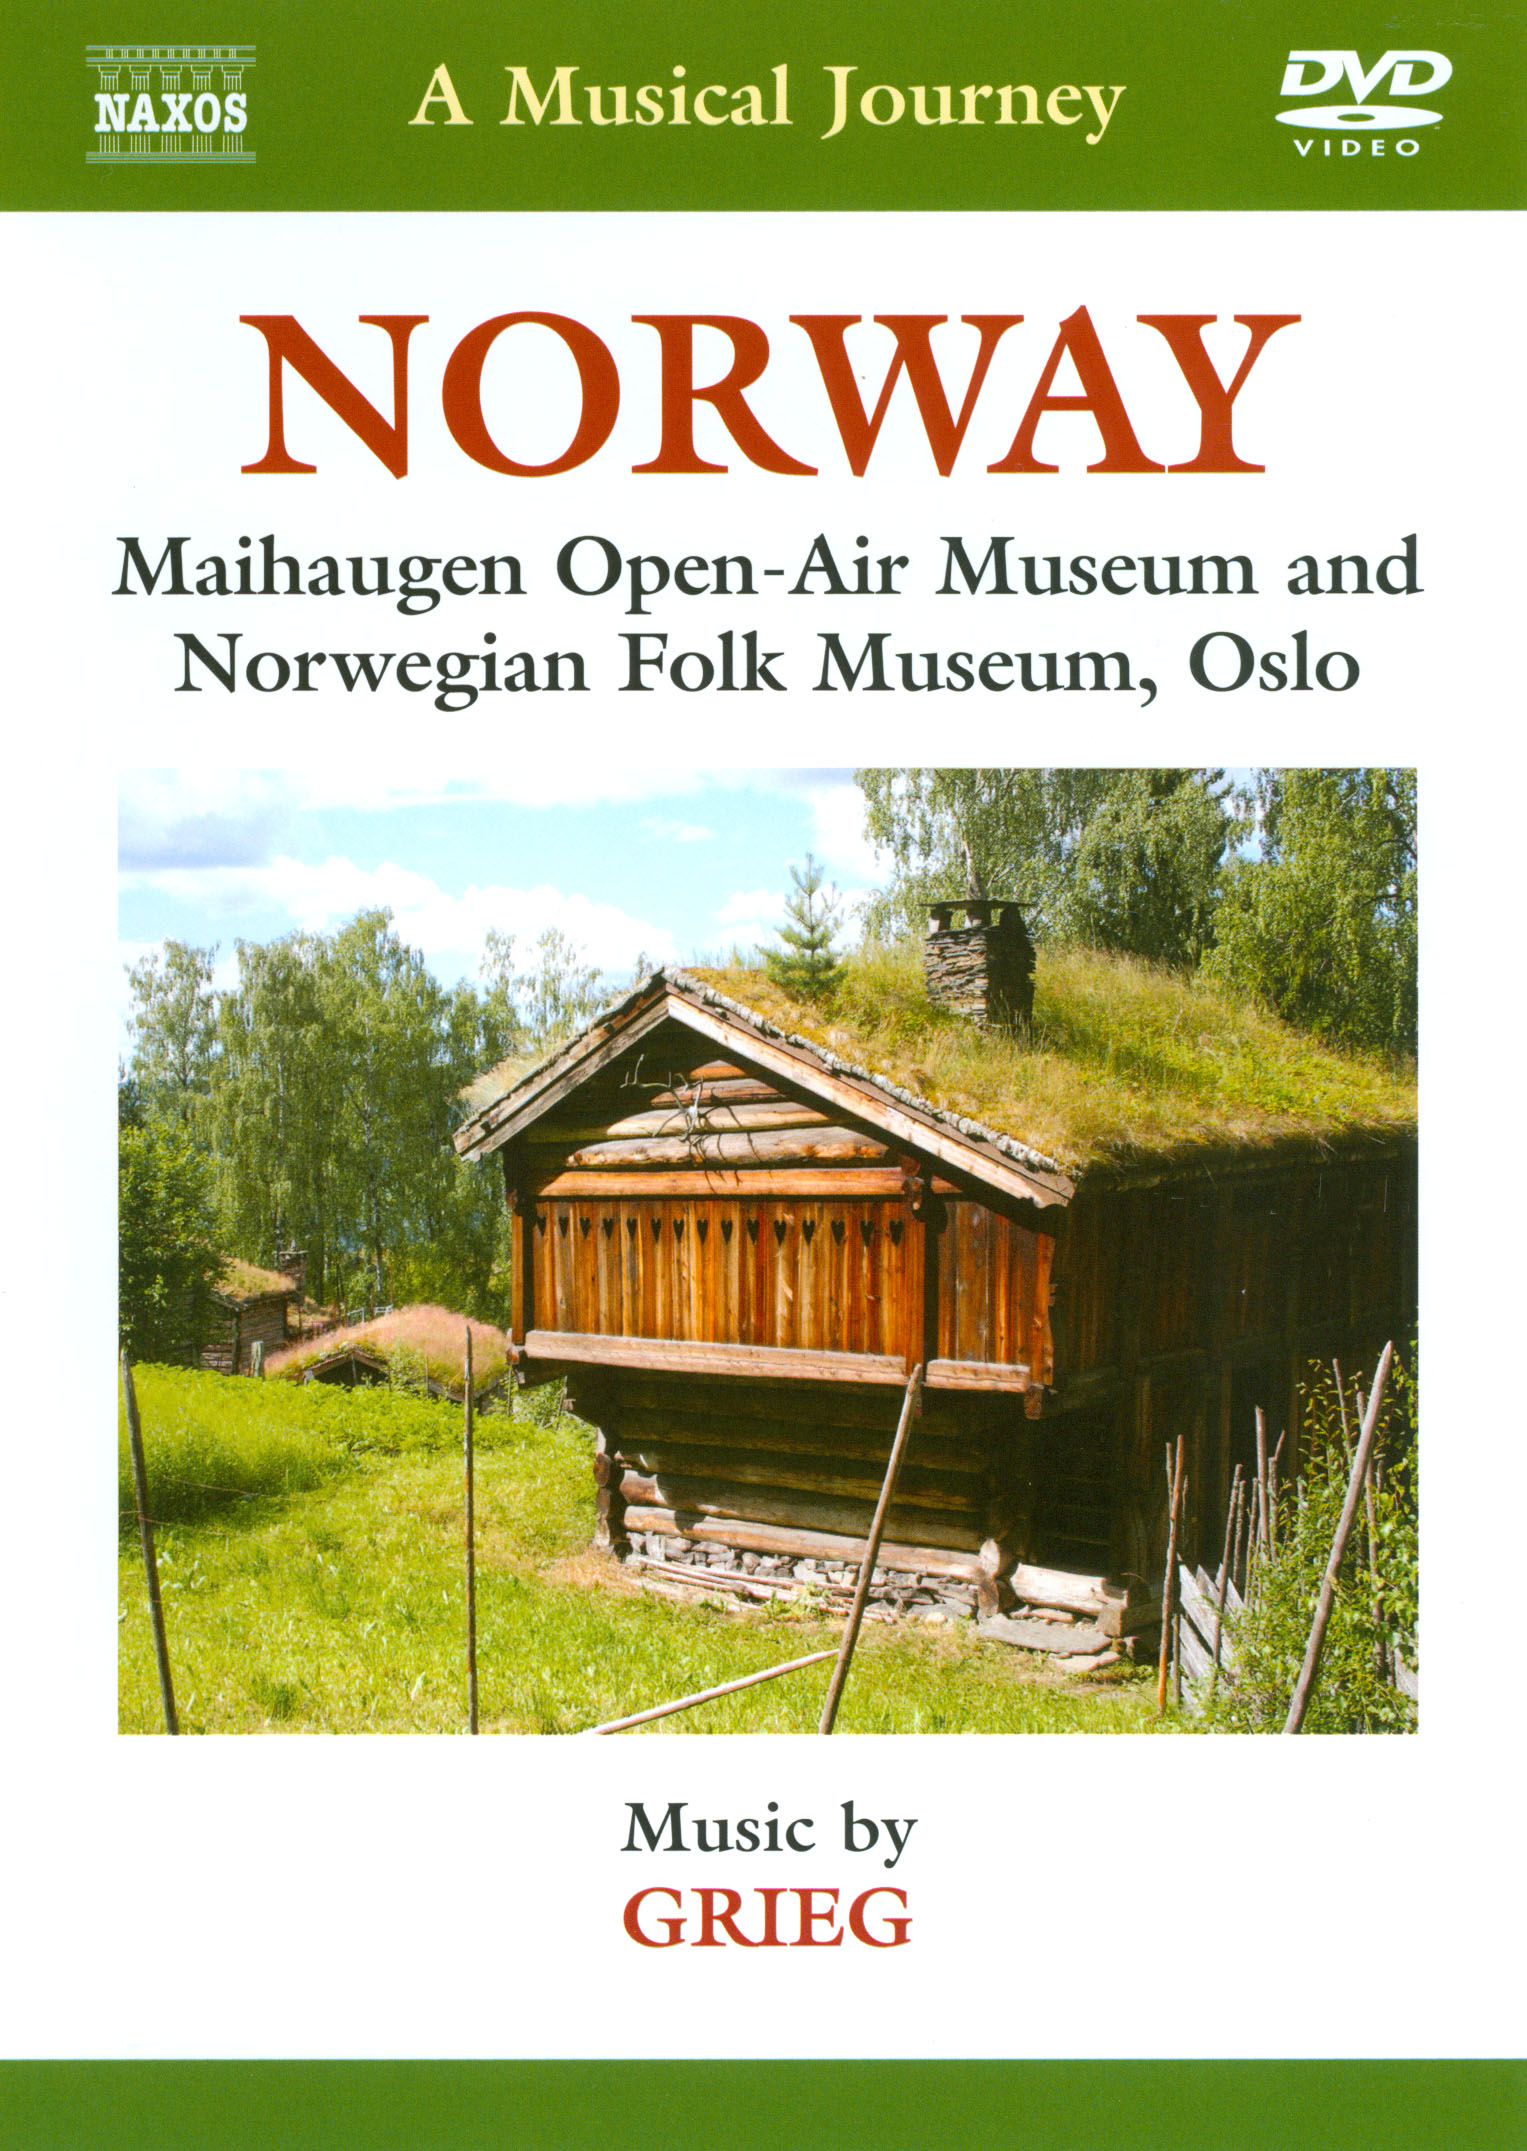 A Musical Journey: Norway - Maihaugen Open-Air Museum and Norwegian Folk Museum, Oslo